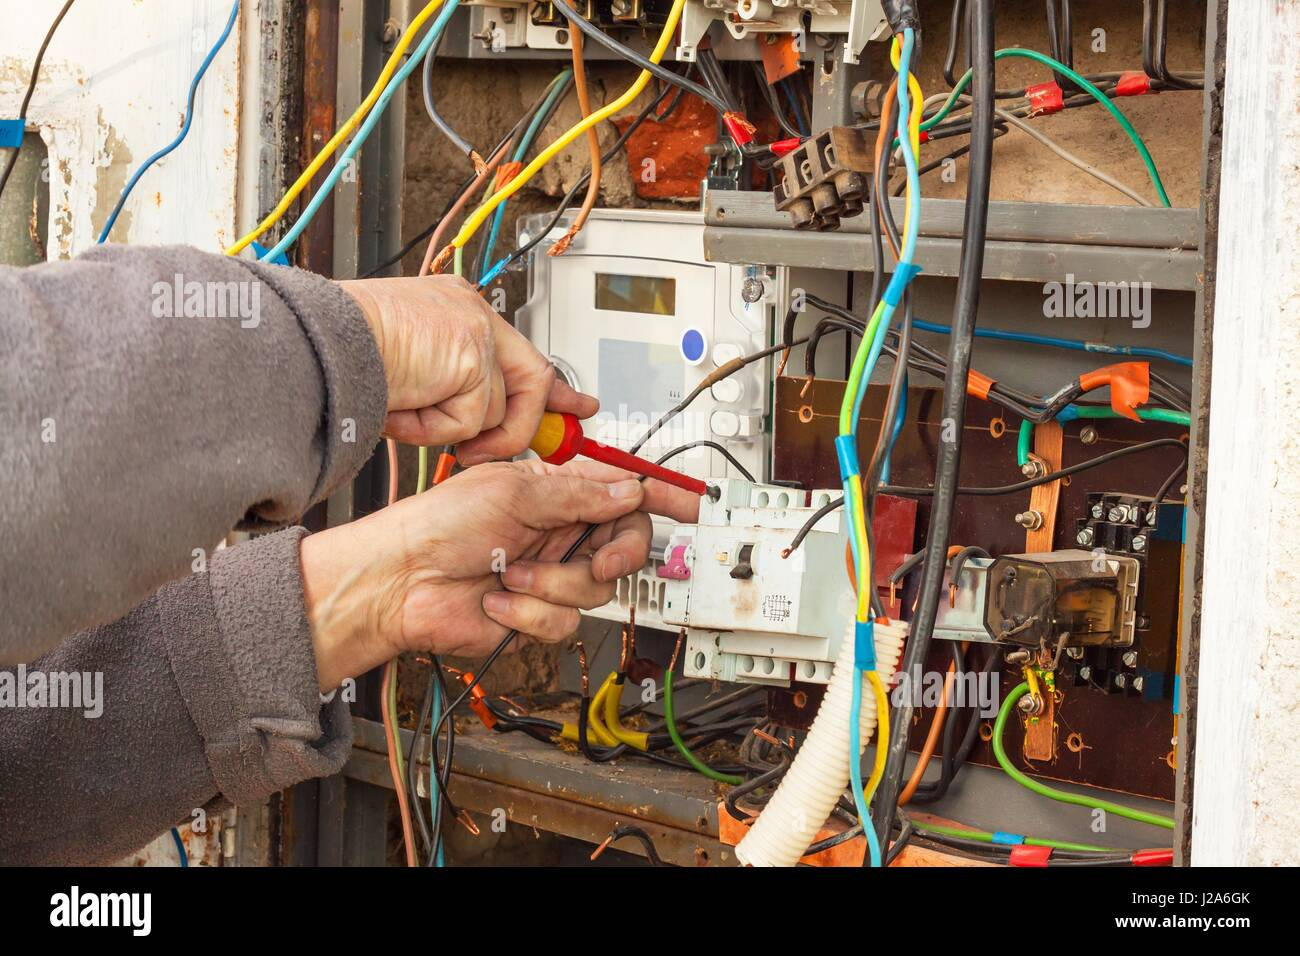 repair of electricity distribution in an old house the man repairs rh alamy com body electrical wiring repaired electrical wiring repair cost